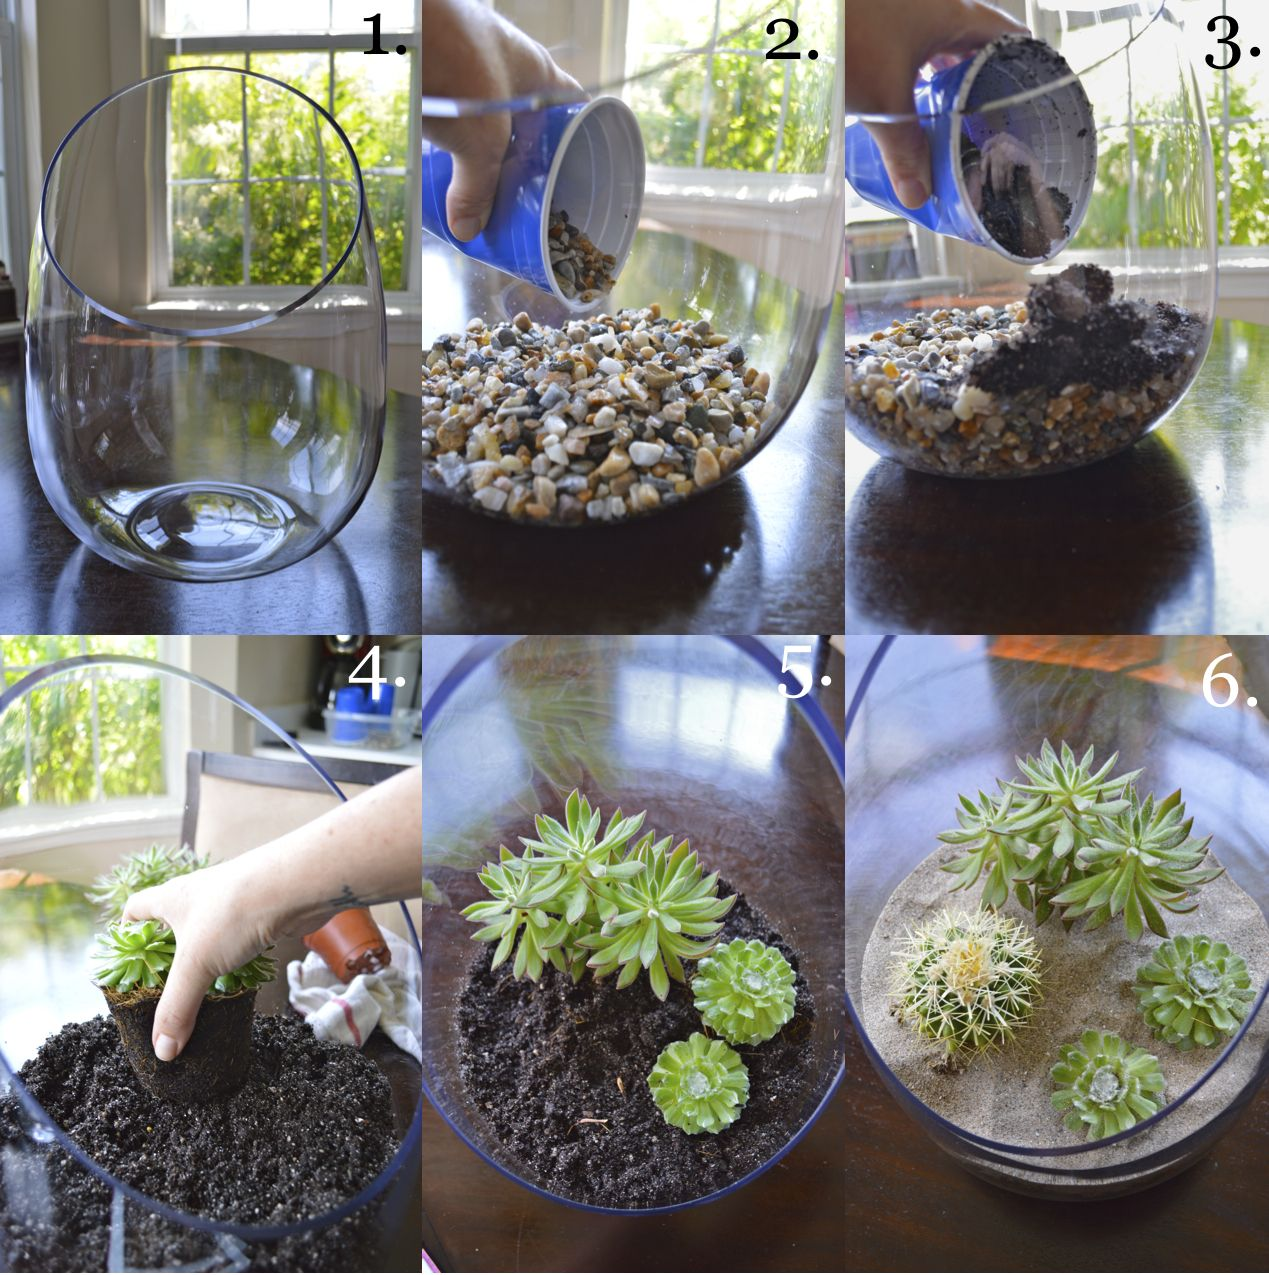 Making Terrariums Water The Terrarium With Just Enough Water To